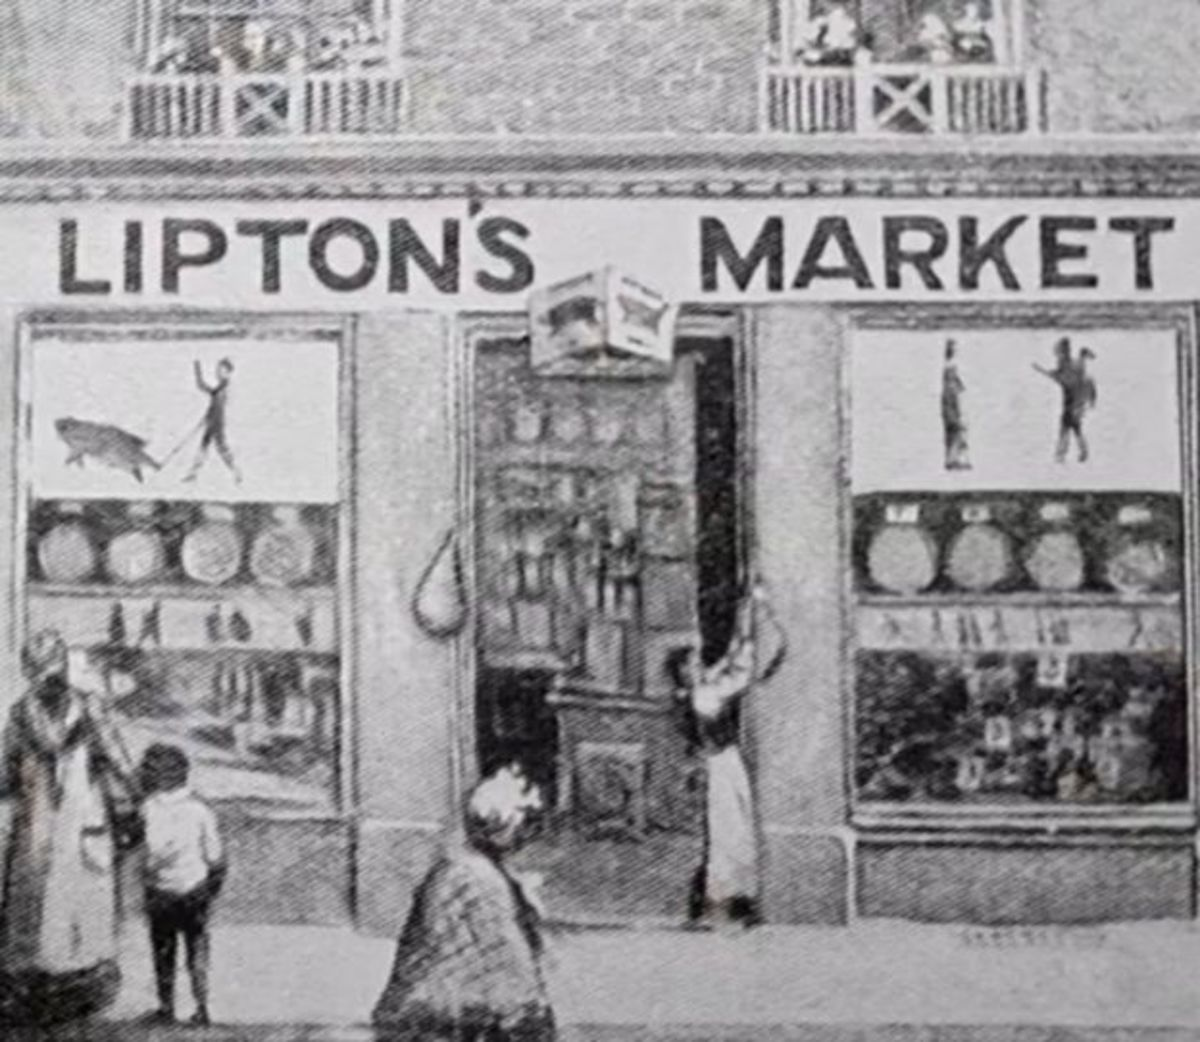 Tommy Lipton's first store.